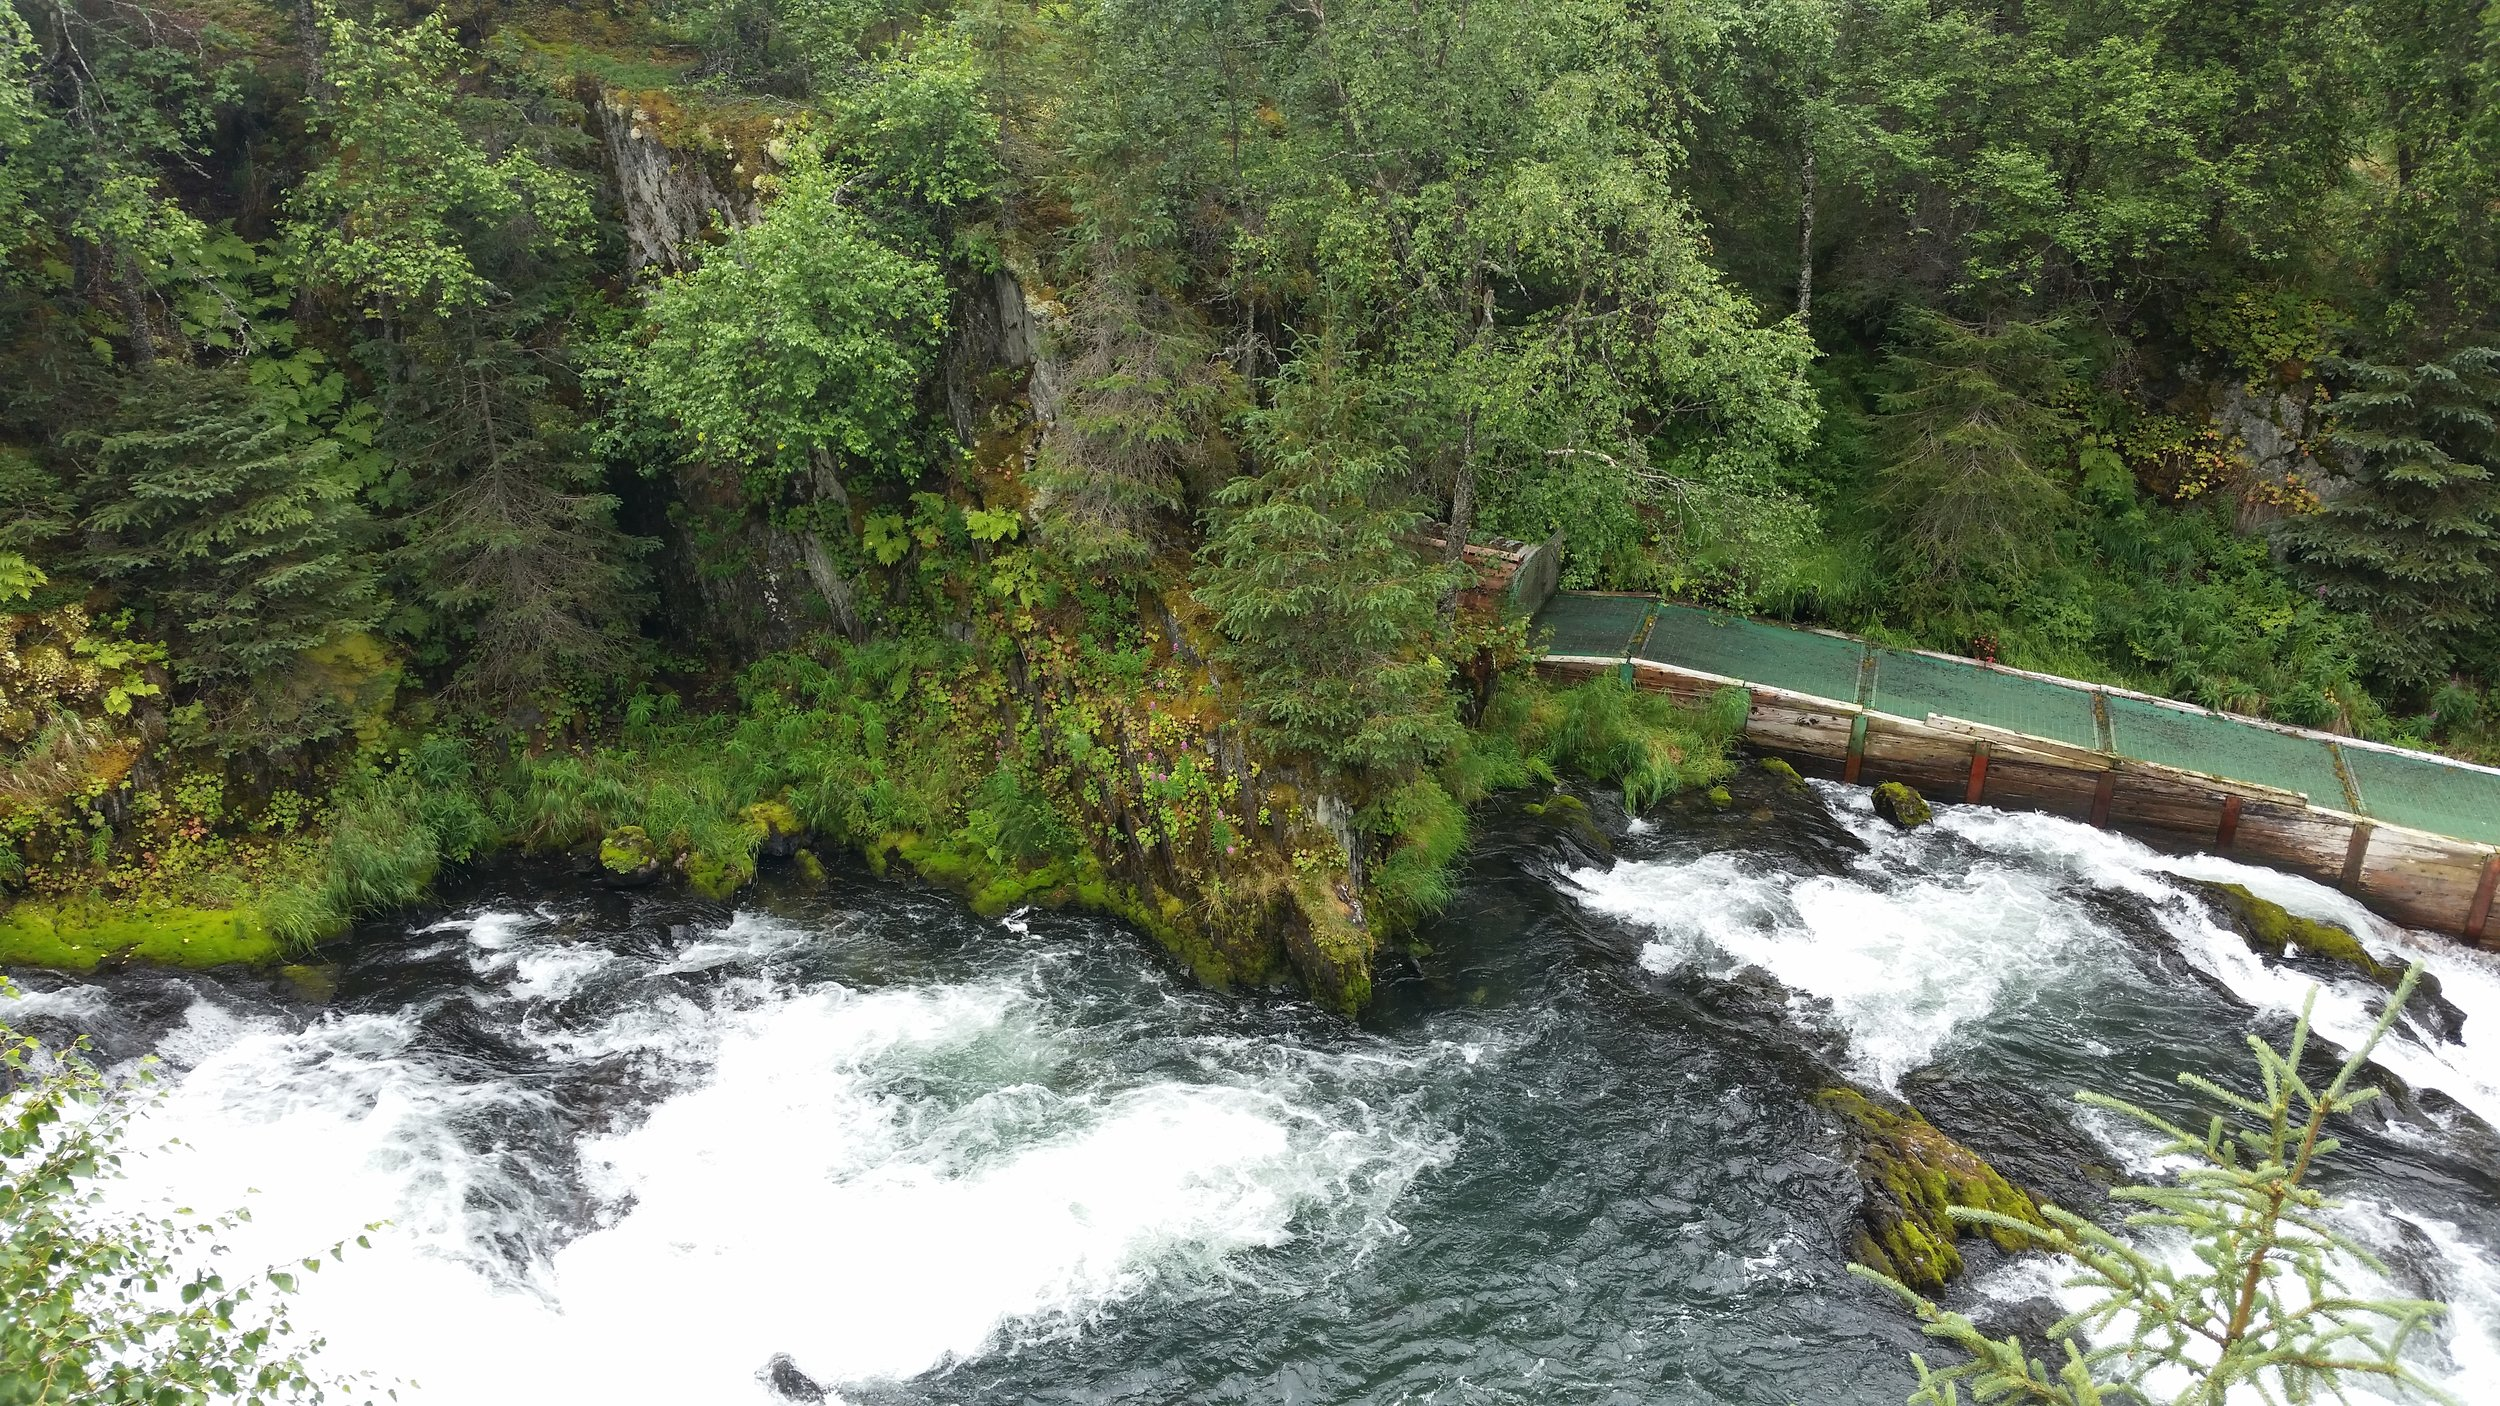 2 mile hike to see Russian river falls (time your trip to see spawning salmon)